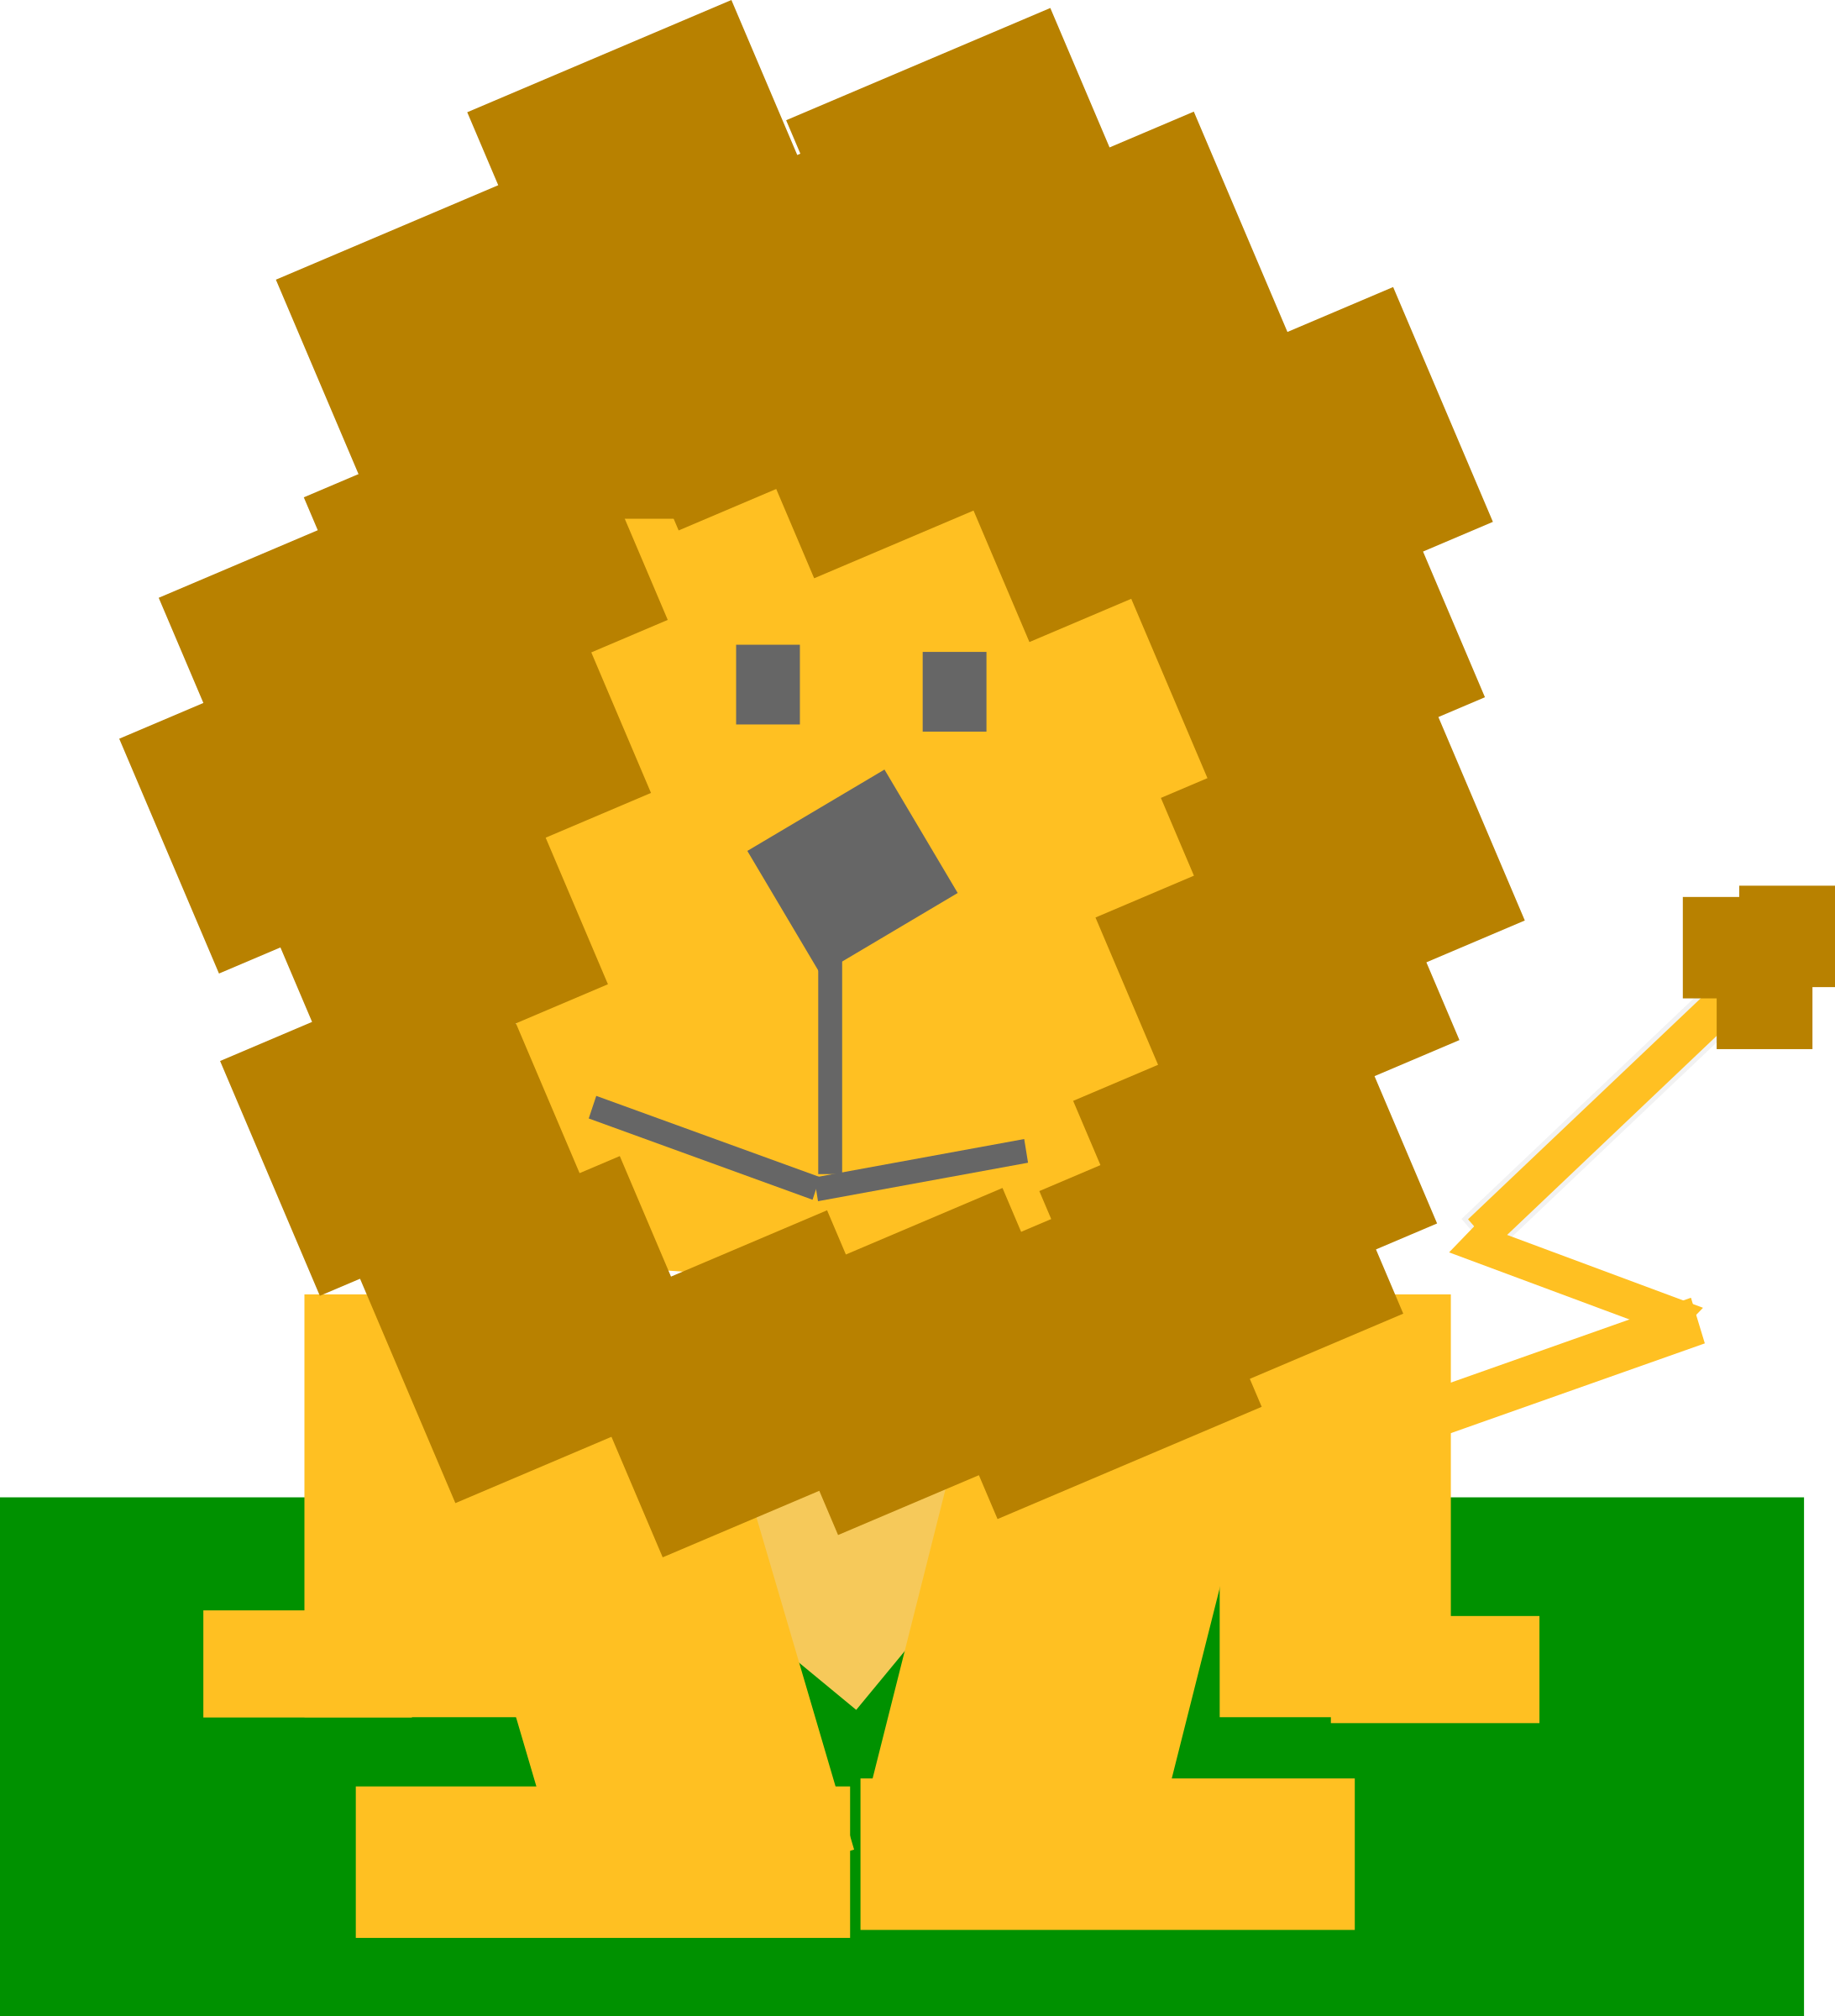 Square animal cartoon lion by Dog99x